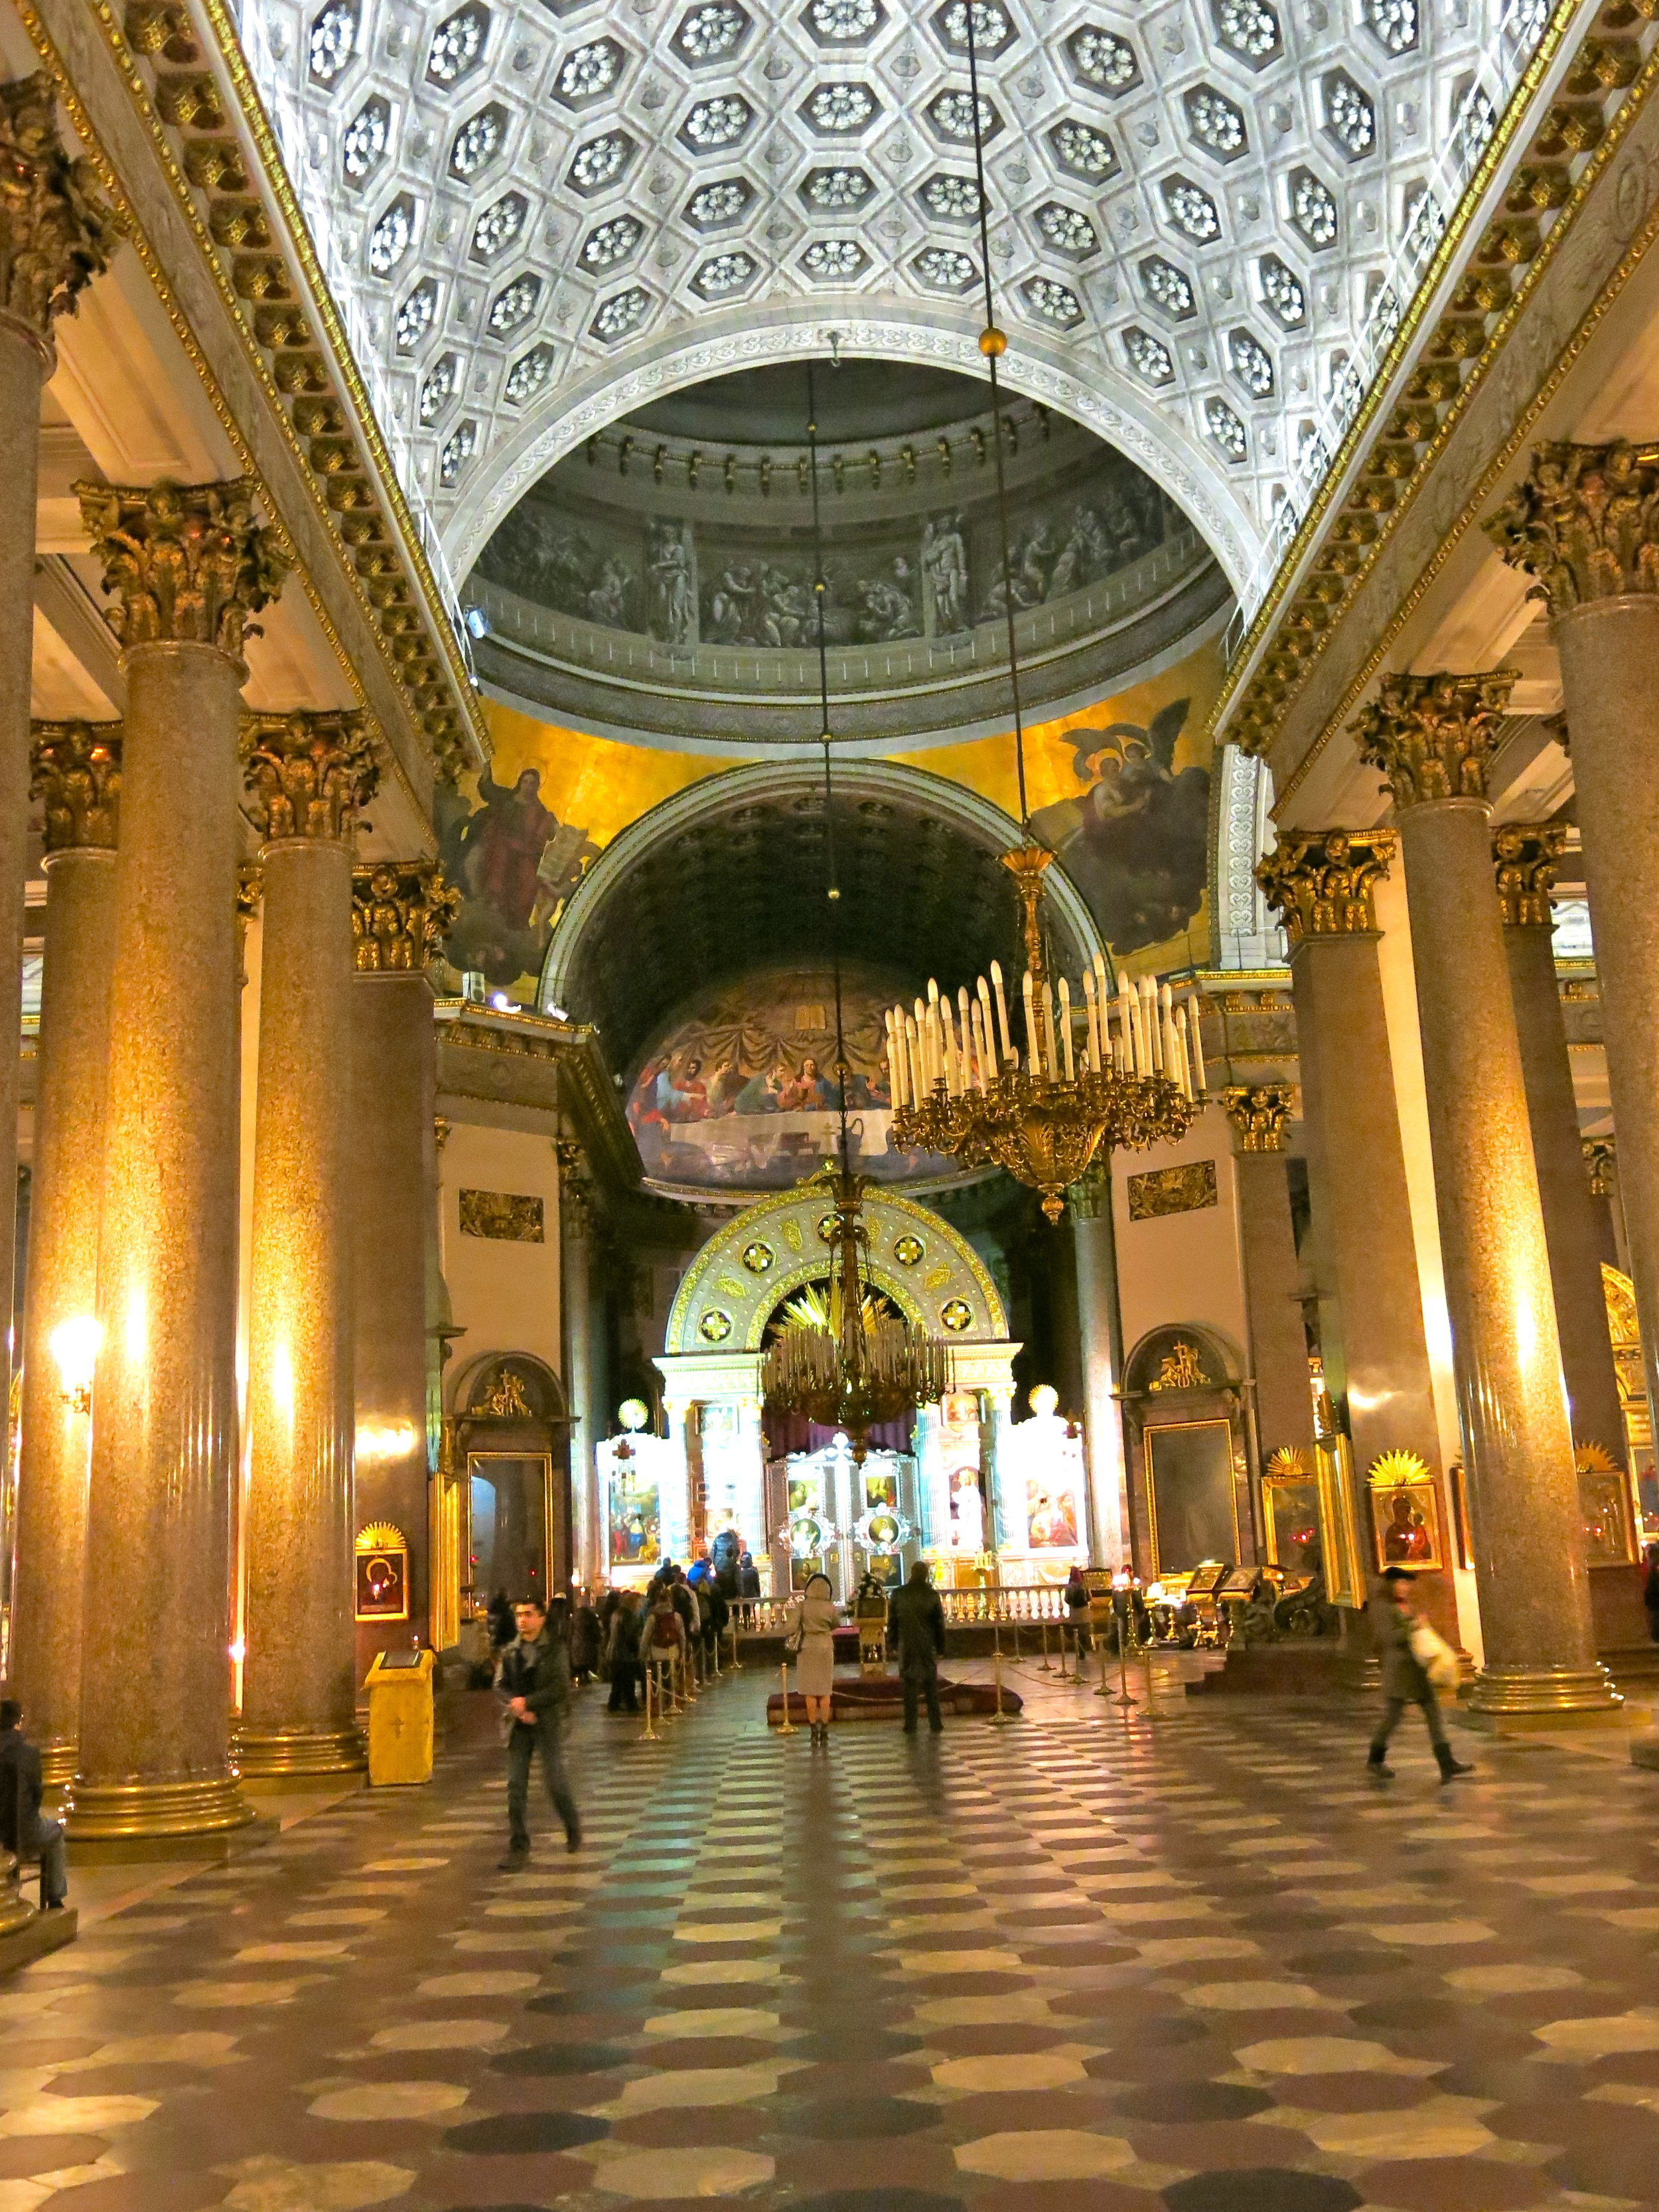 Inside the cathedral inspired by Saint-Peter in the Vatican (Rome)